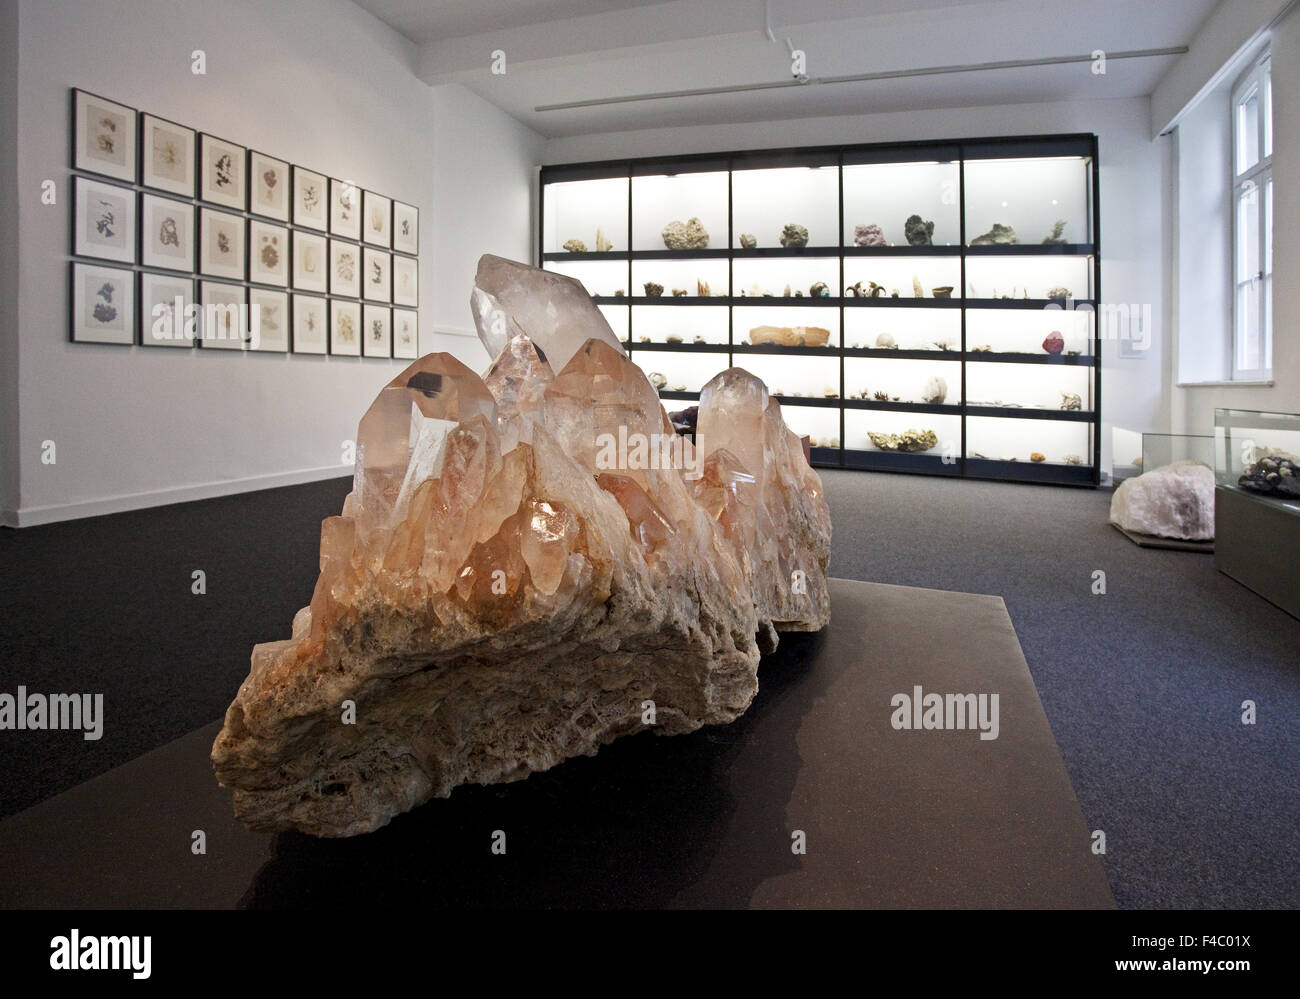 Mineral Museum, Essen, Germany - Stock Image